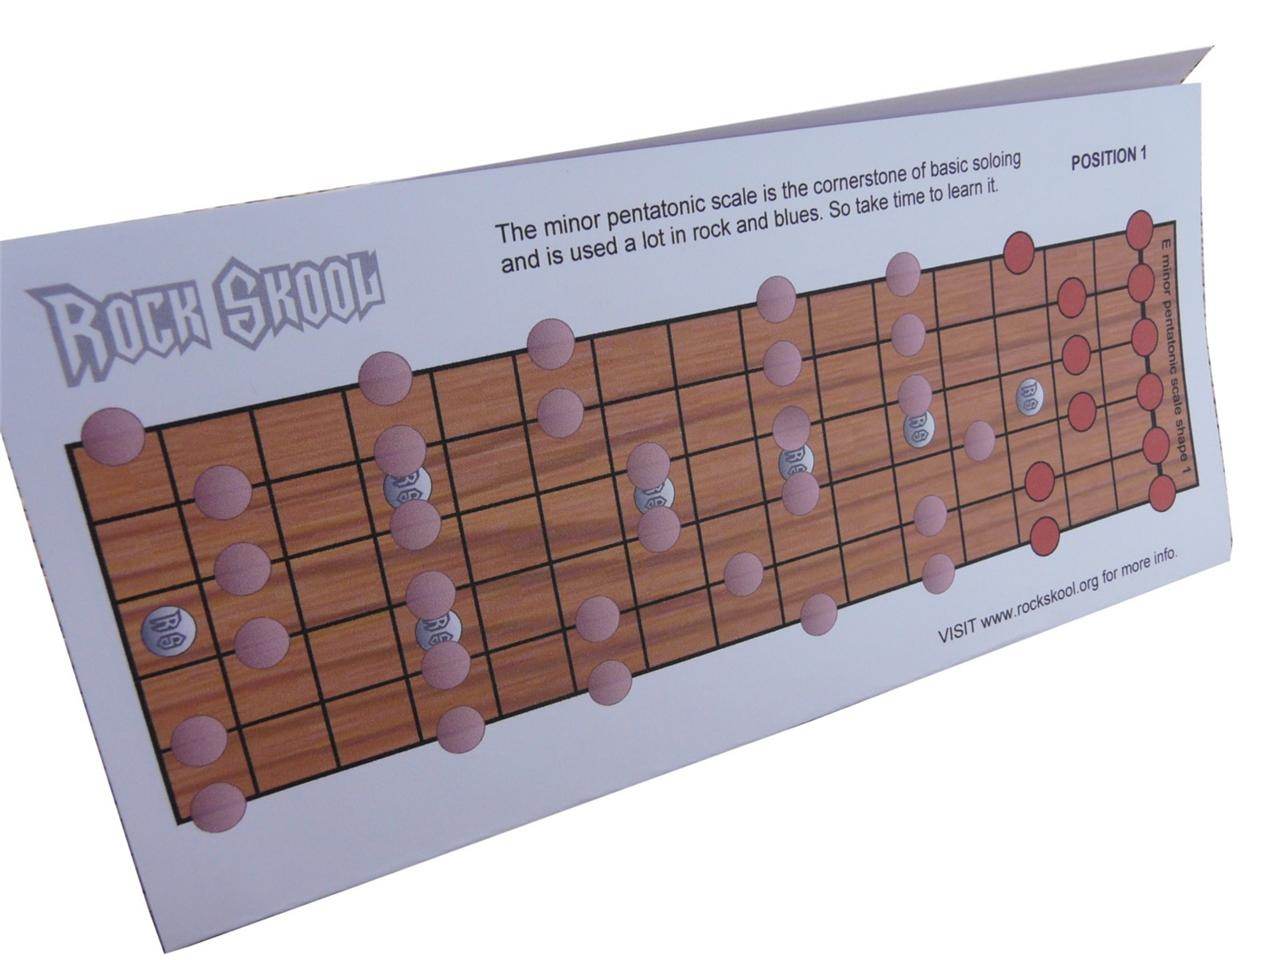 ROCKSKOOL-GUITAR-CHARTS-chords-pentatonic-scales-fretboard-notes-bass-notes